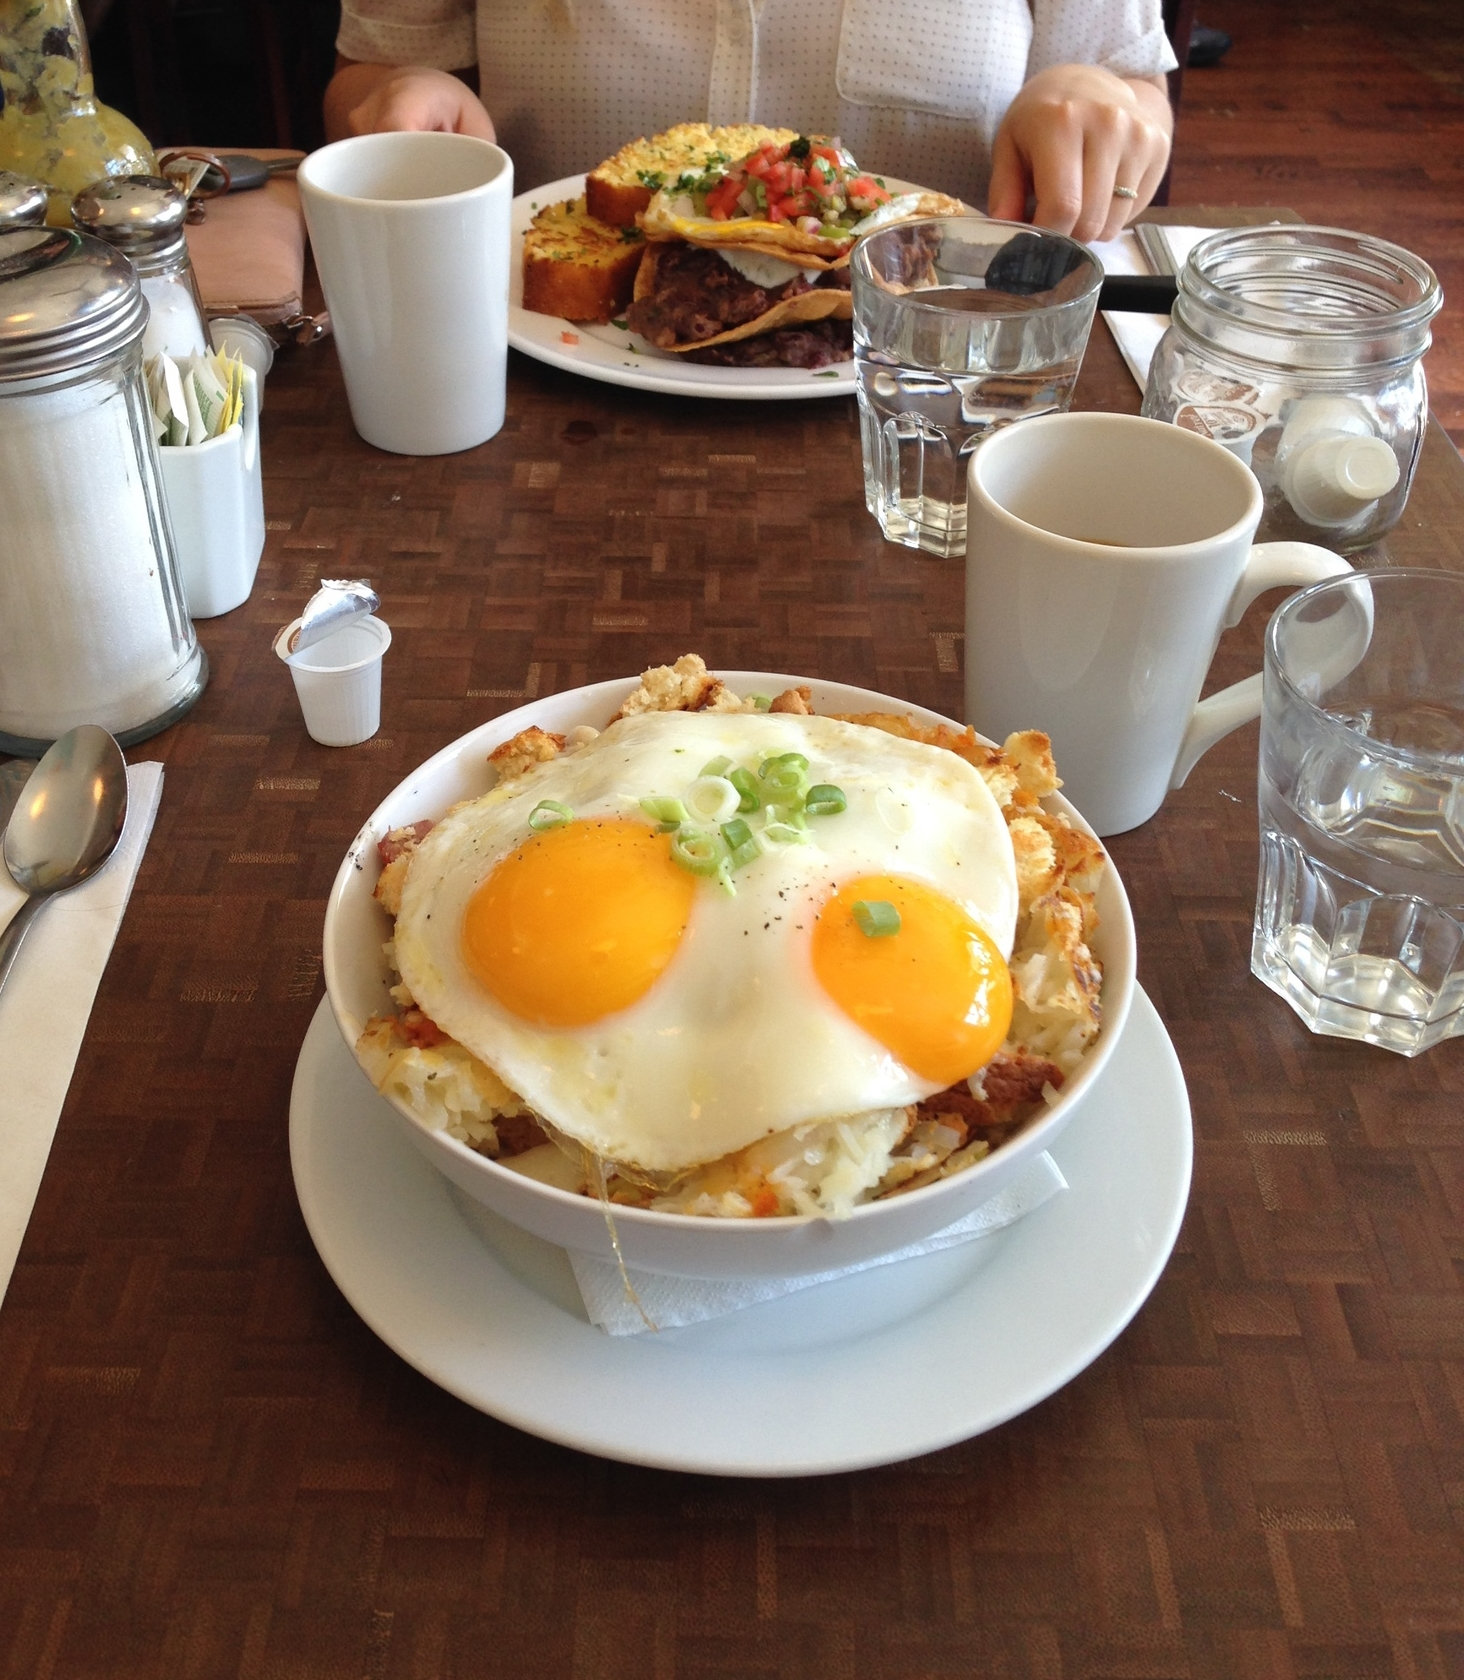 The Charlie Bowl for me, the vegetarian Huevos Rancheros for Carly